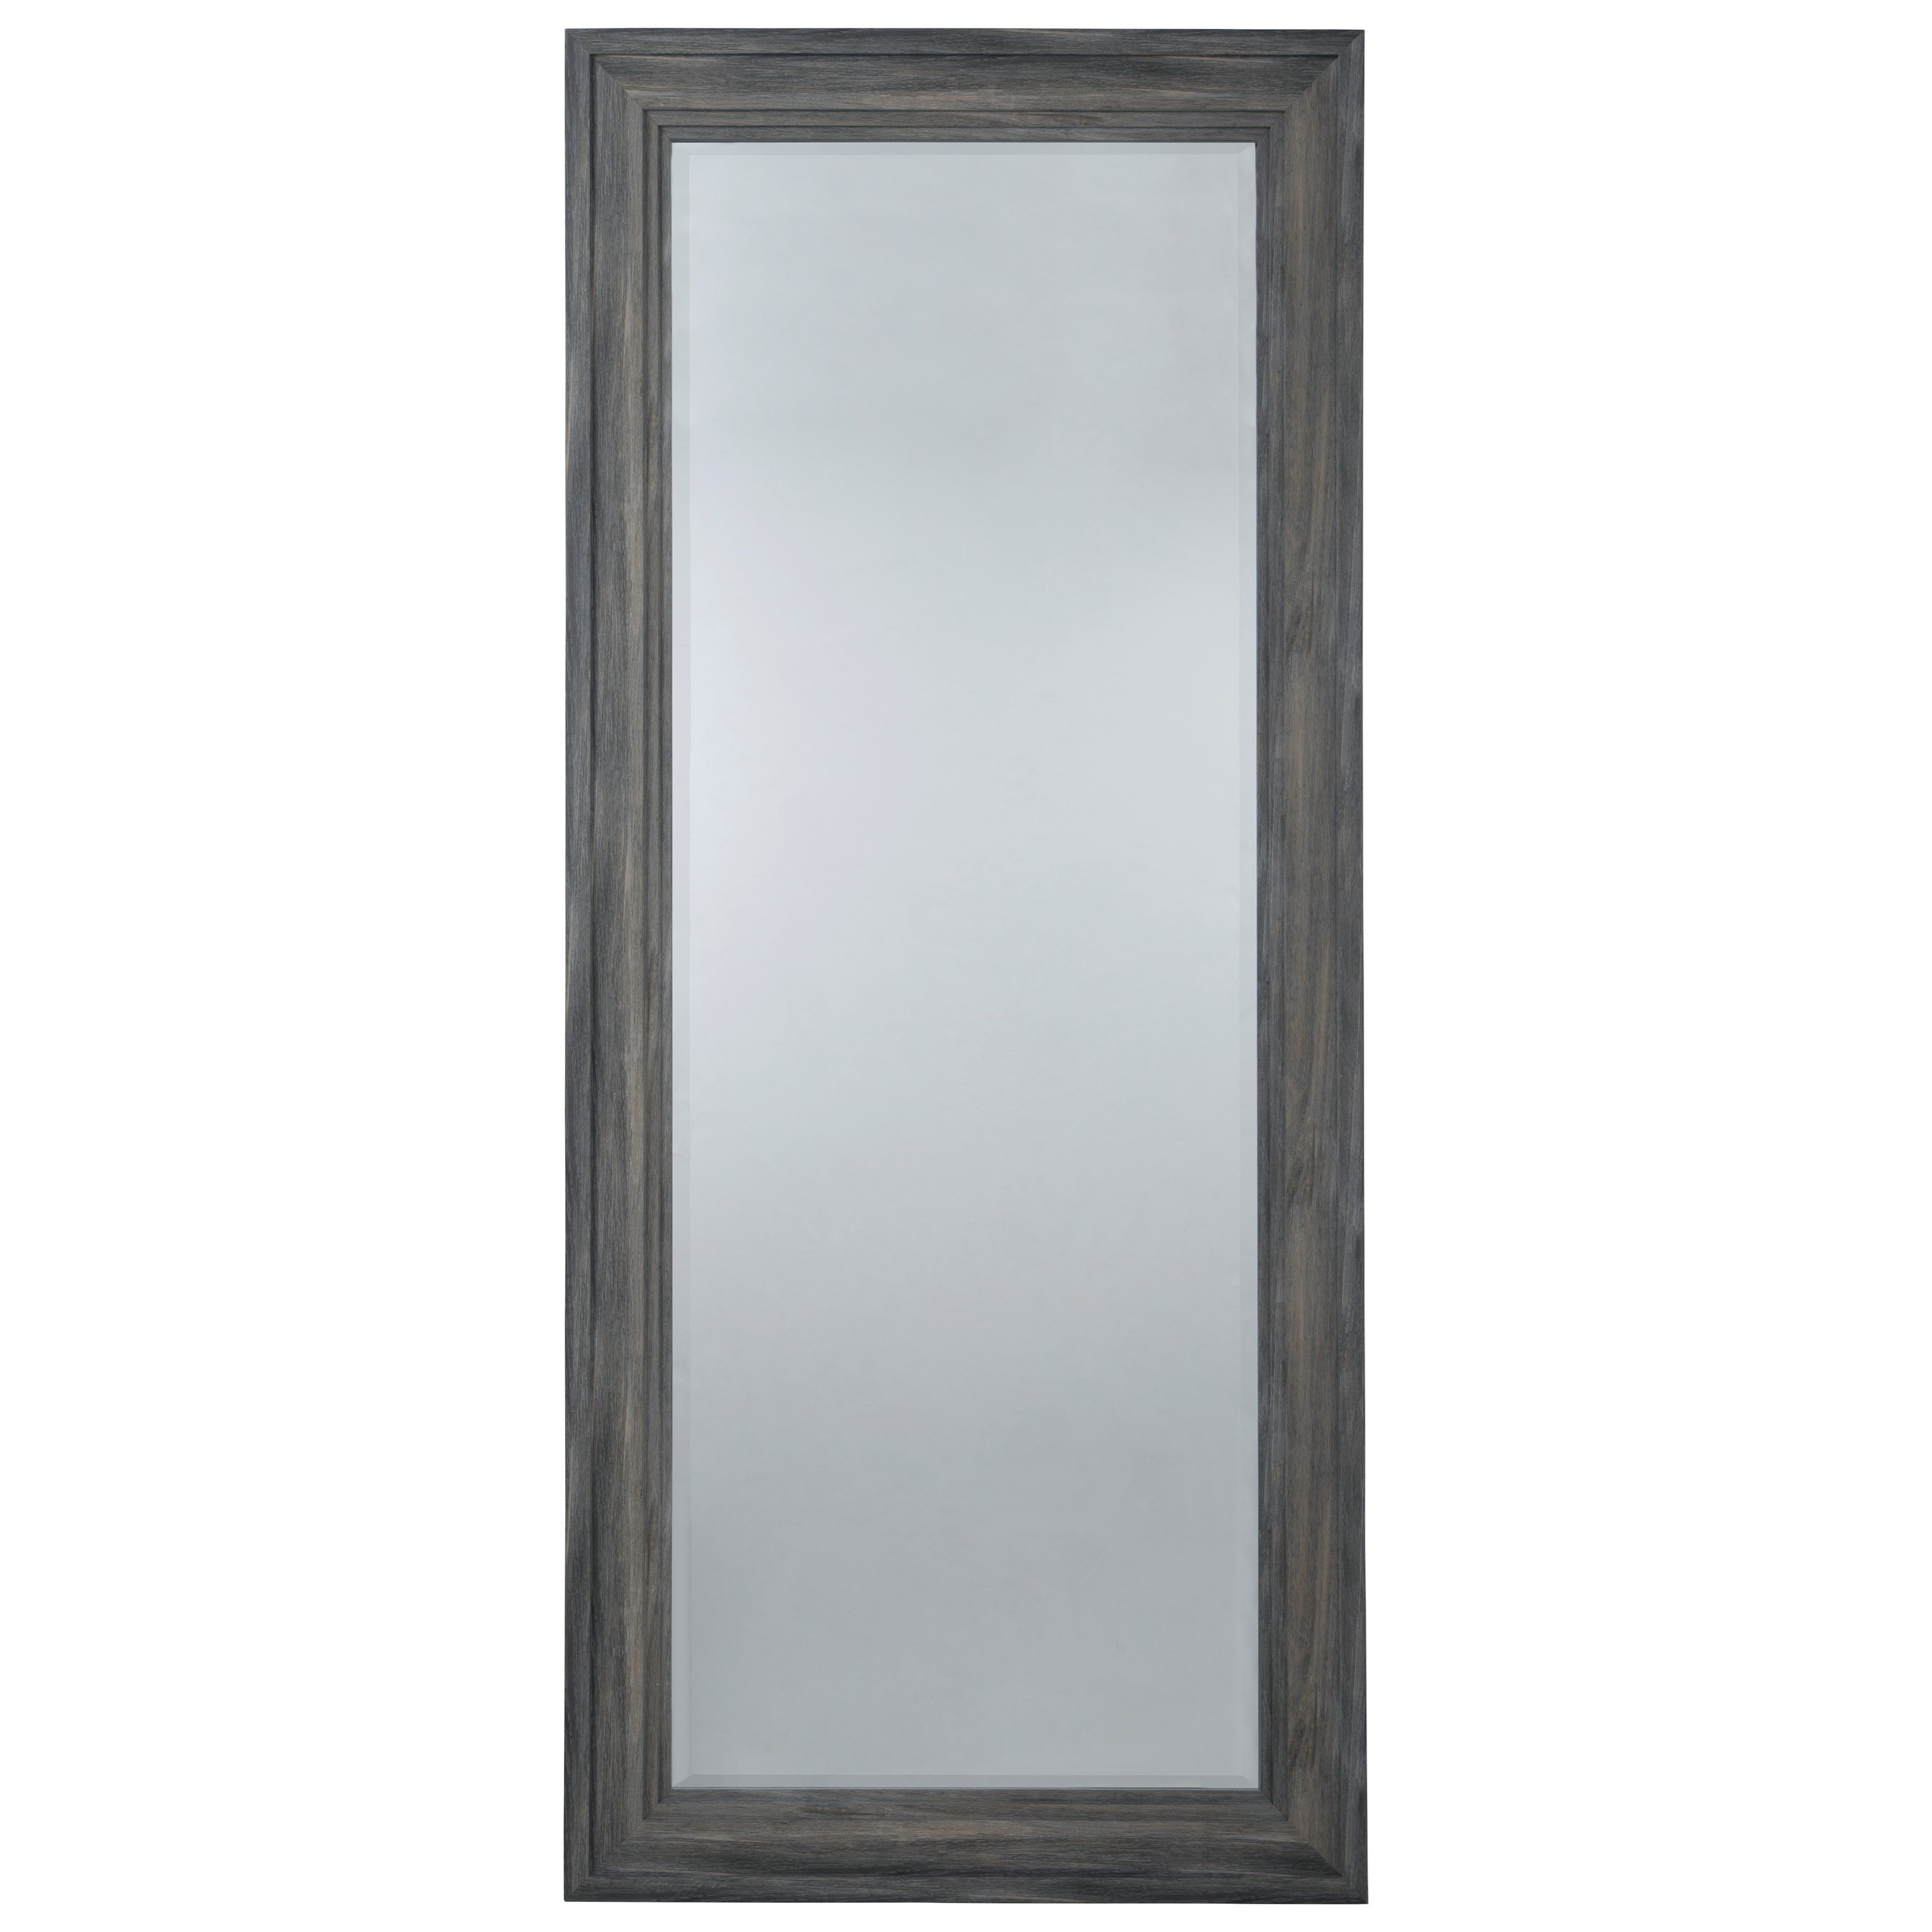 Accent Mirrors Jacee Antique Gray Floor Mirror by Signature Design by Ashley at Sparks HomeStore